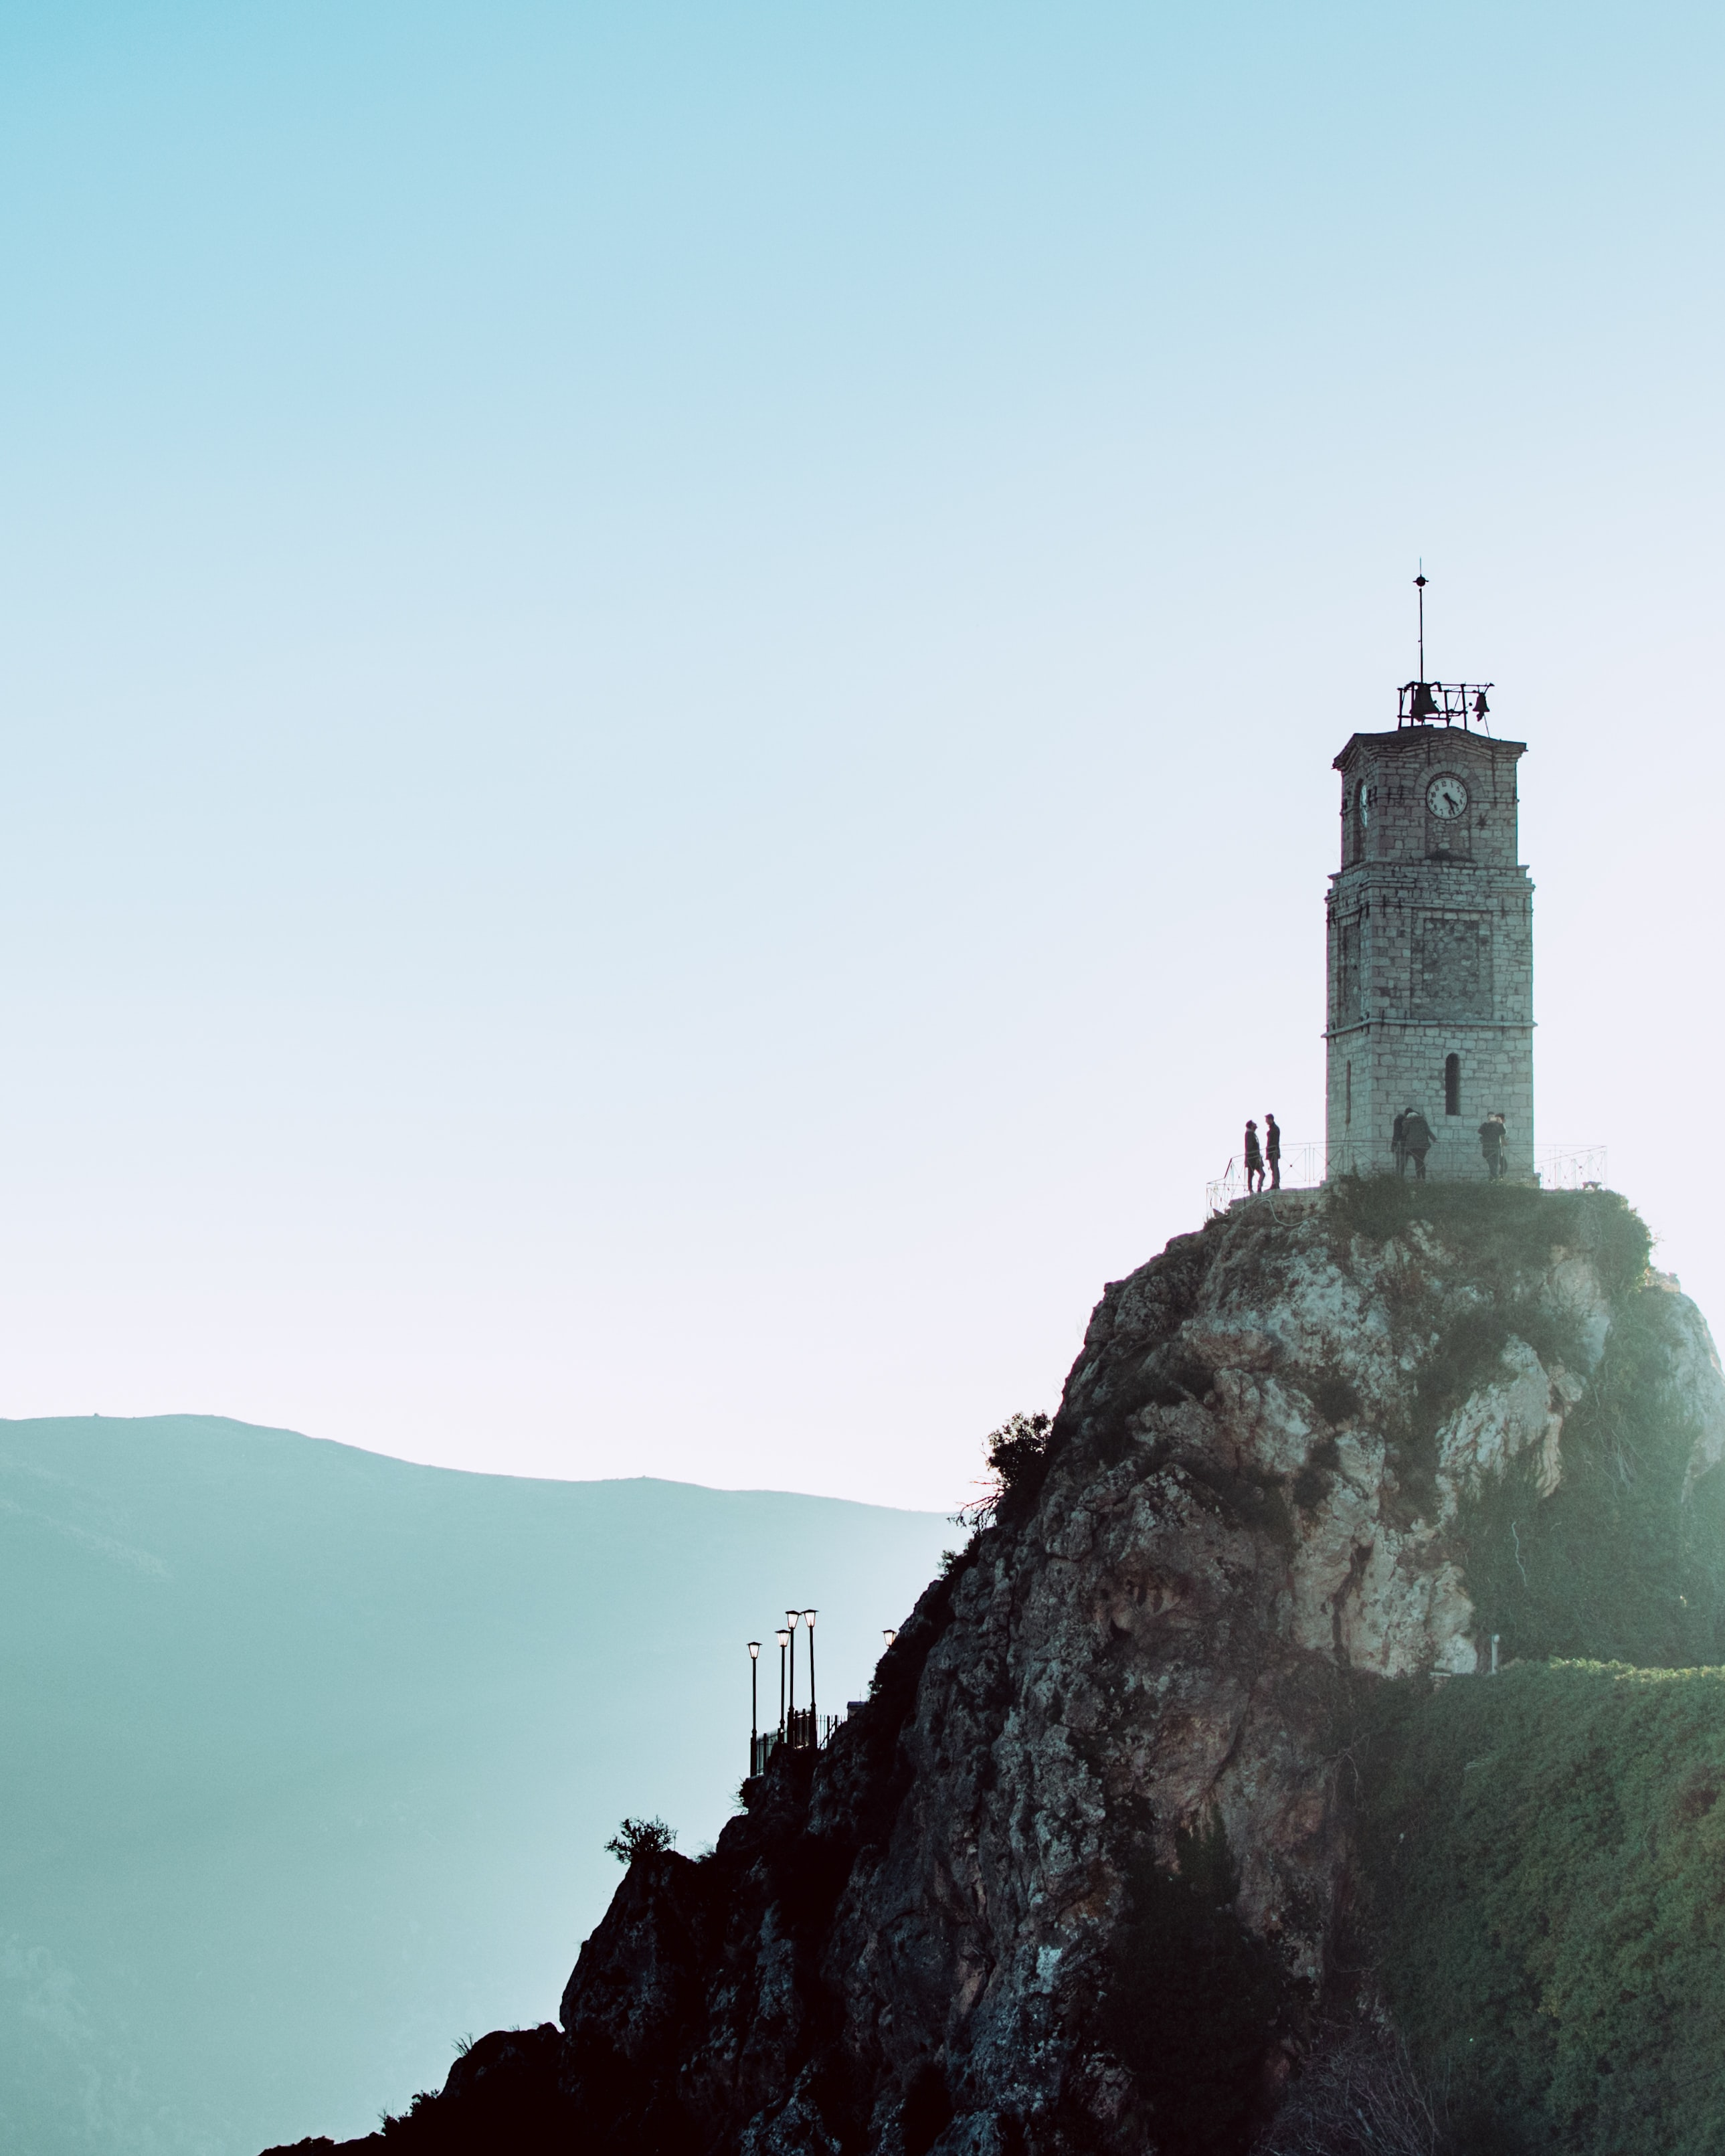 tower at the top of mountain